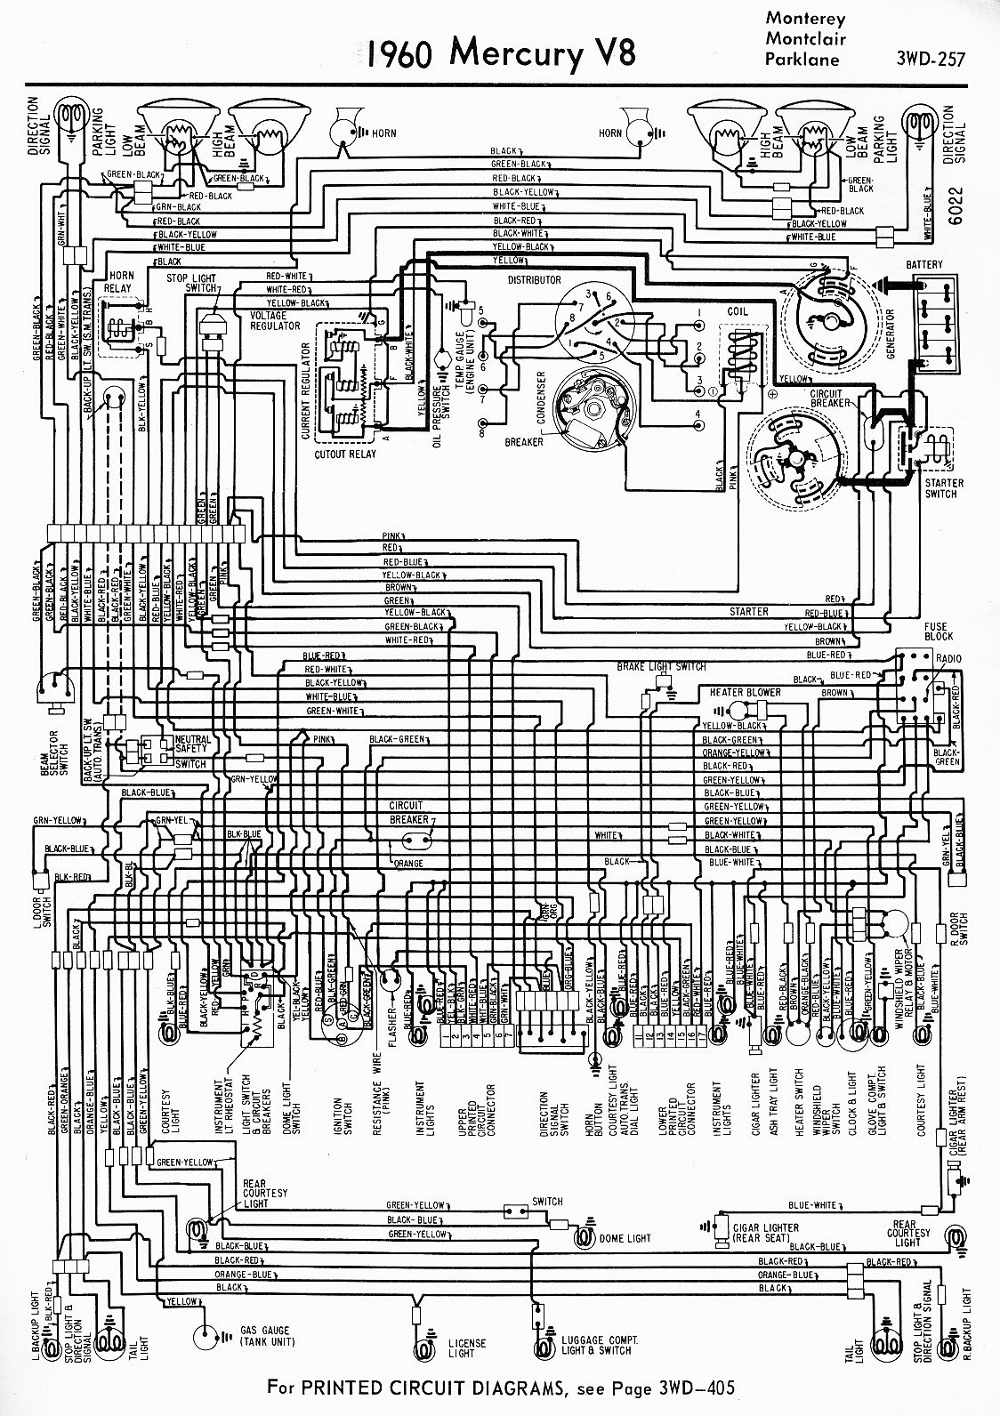 Diagram 1960 Mercury V8 Monterey Montclair Parklane Wiring Diagram